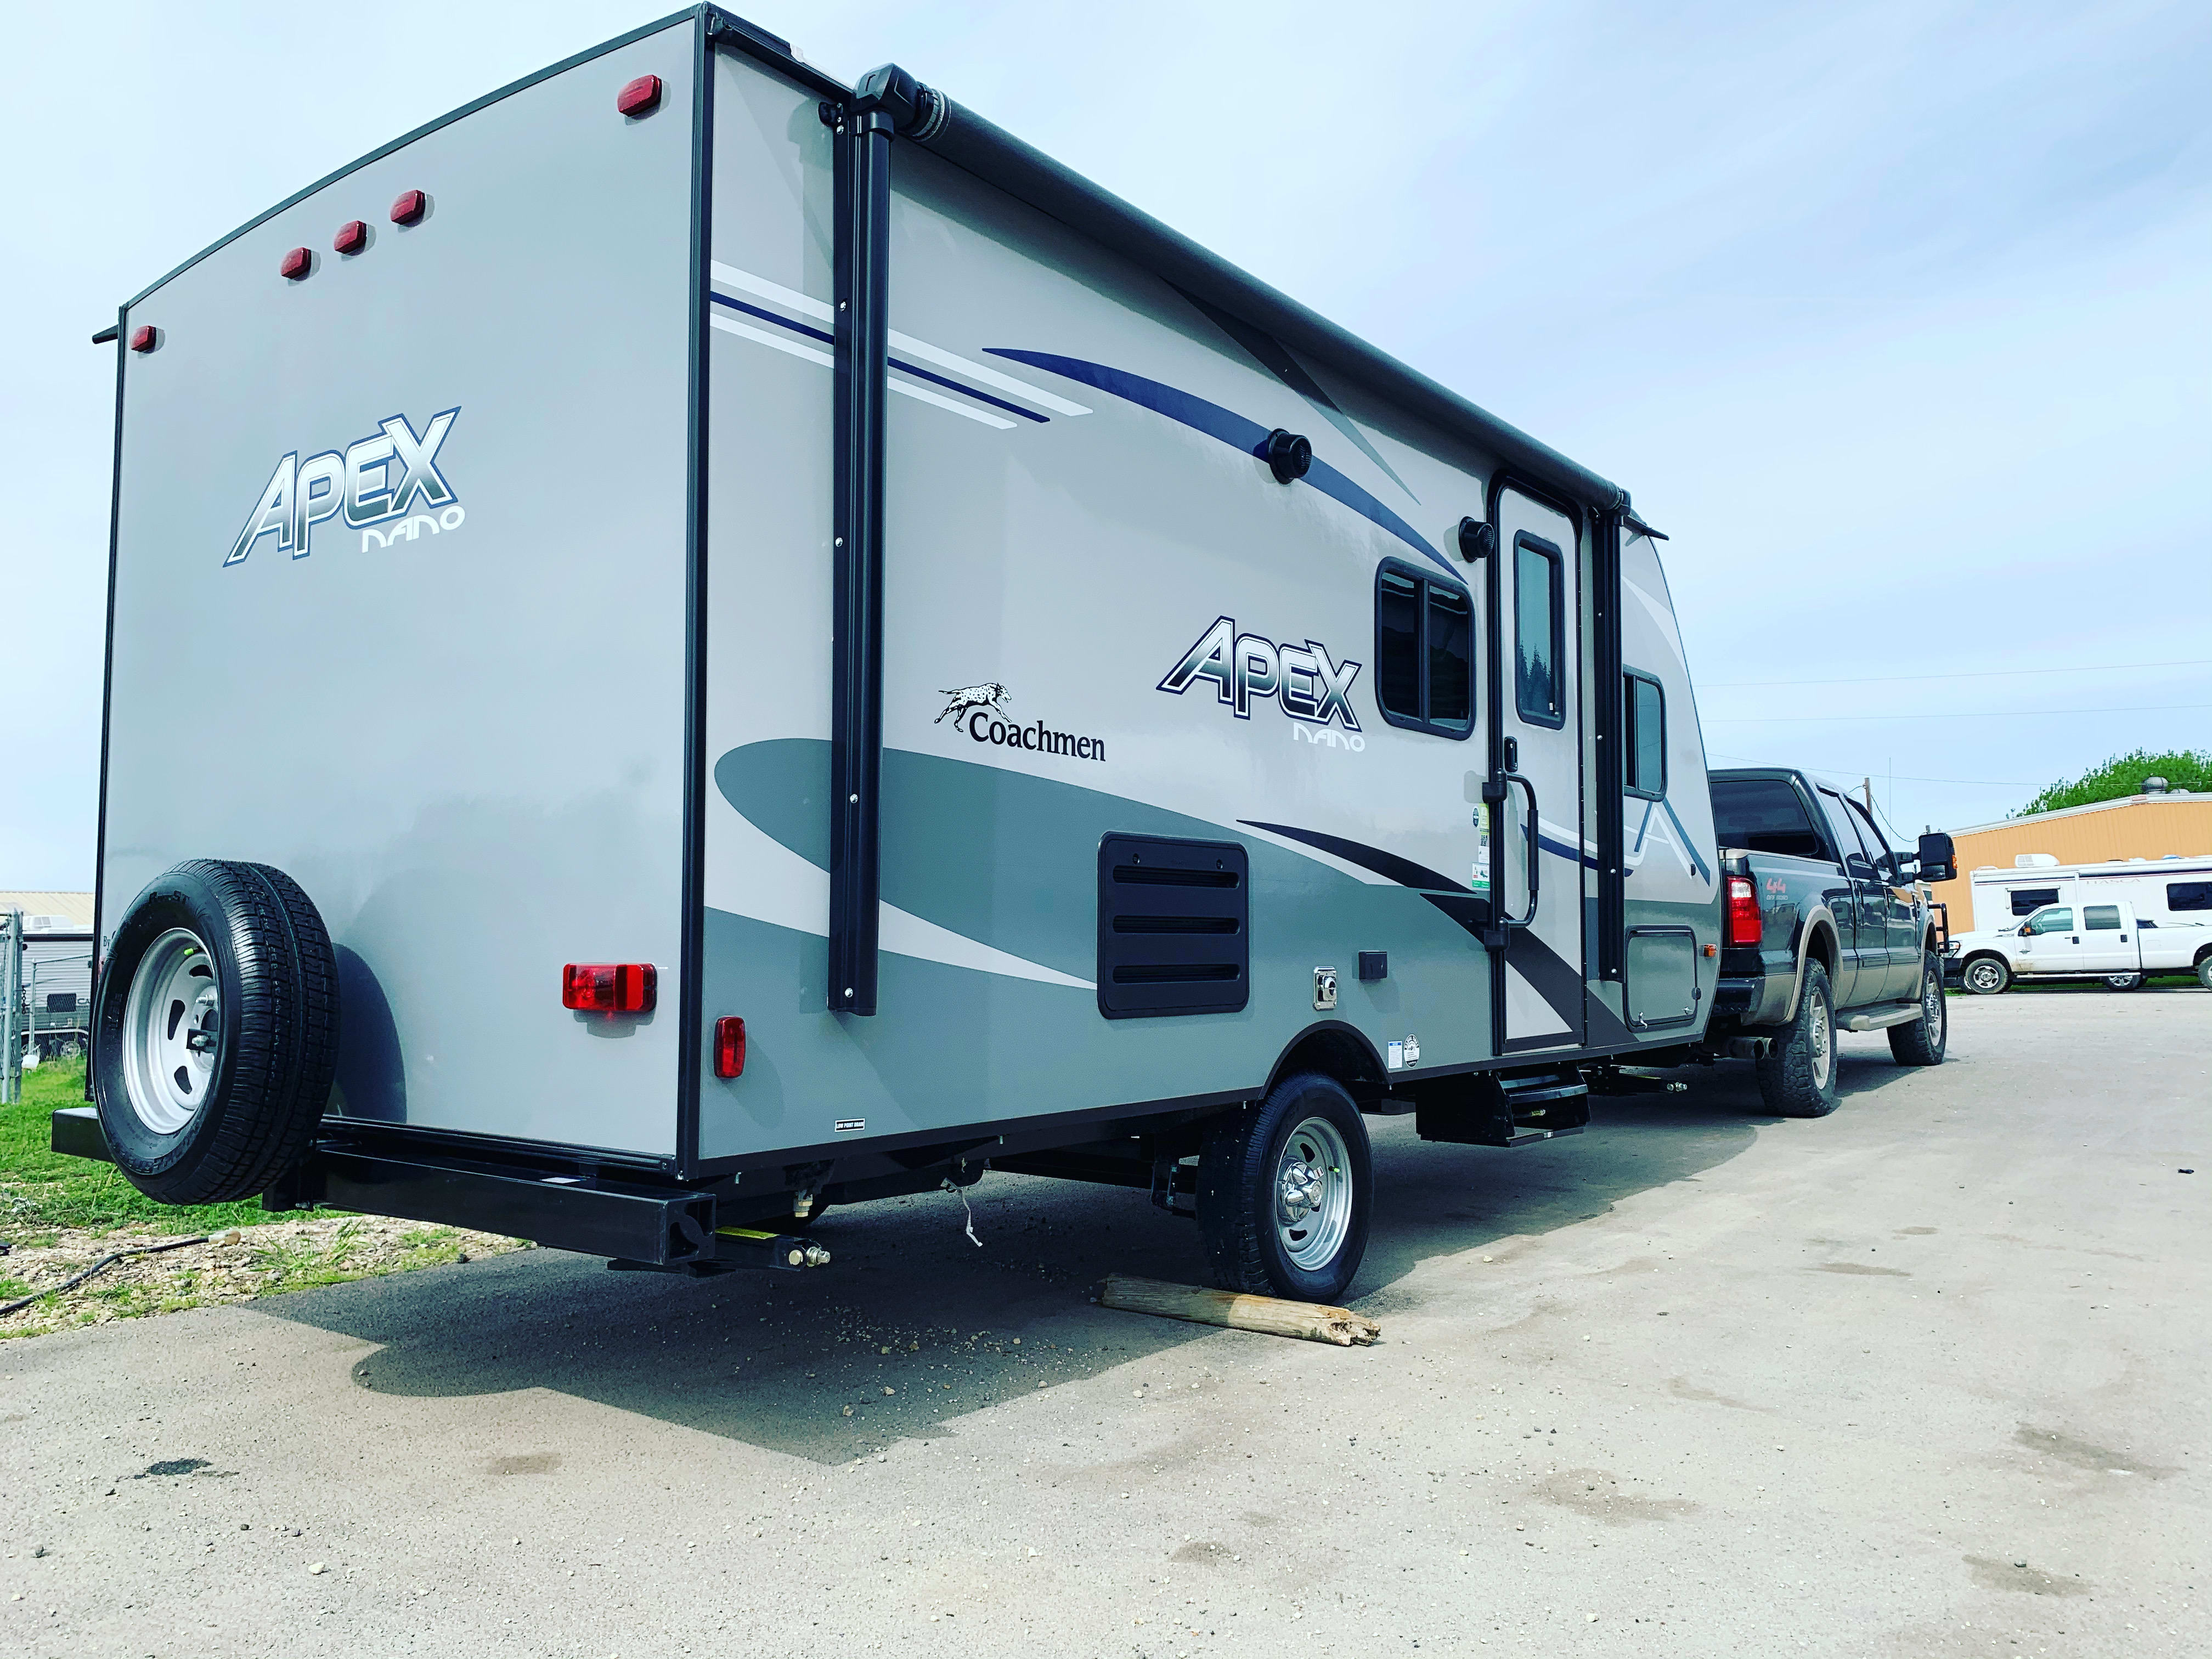 Cassy fresh from the dealer. Don't be fooled by the heavy duty truck, this trailer can be pulled by almost all trucks and most SUVs. . Coachmen Apex 2020